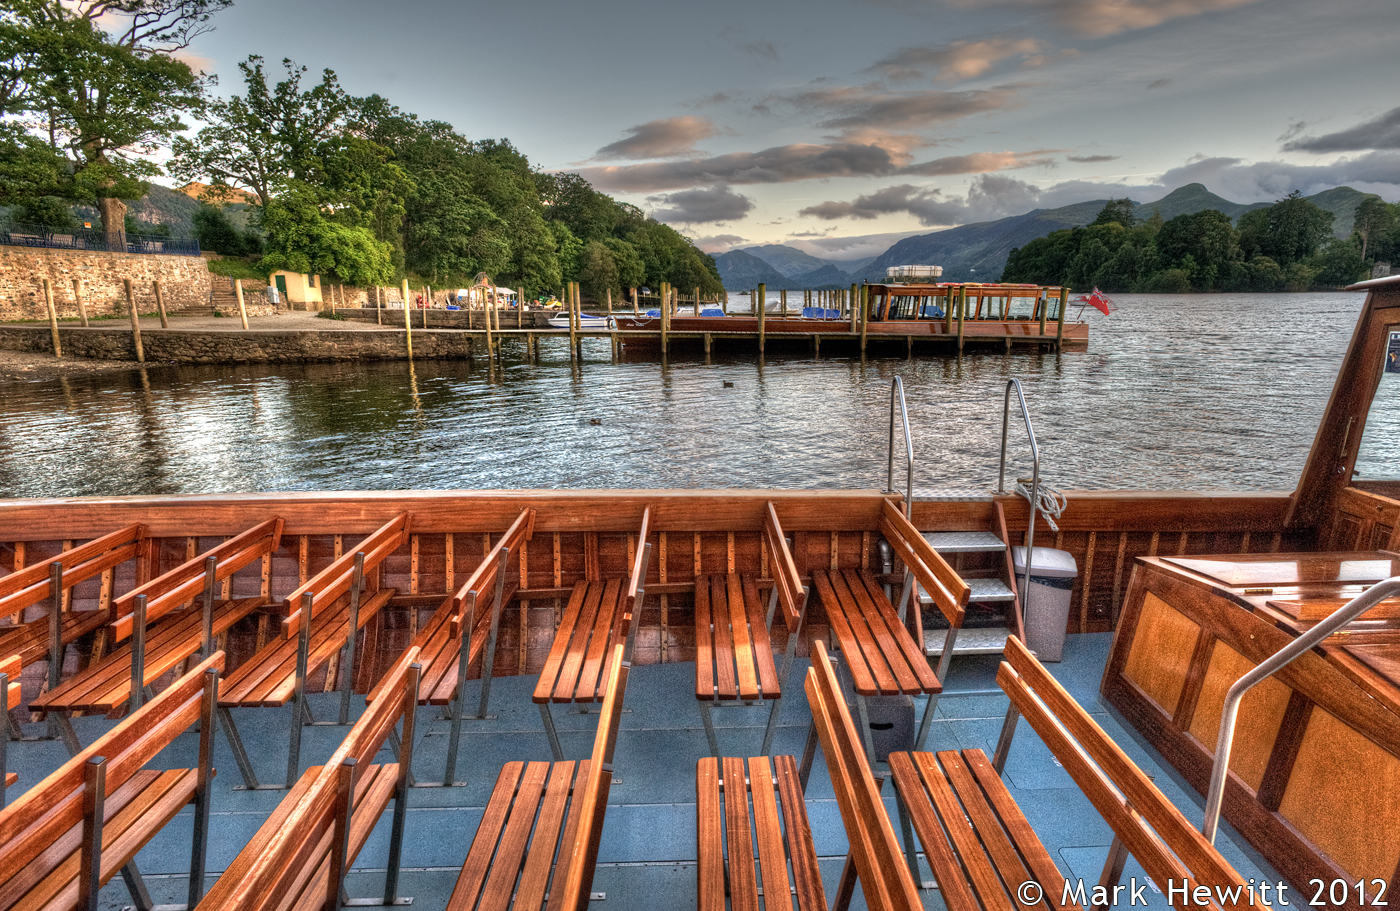 Looking South On Derwentwater Launch